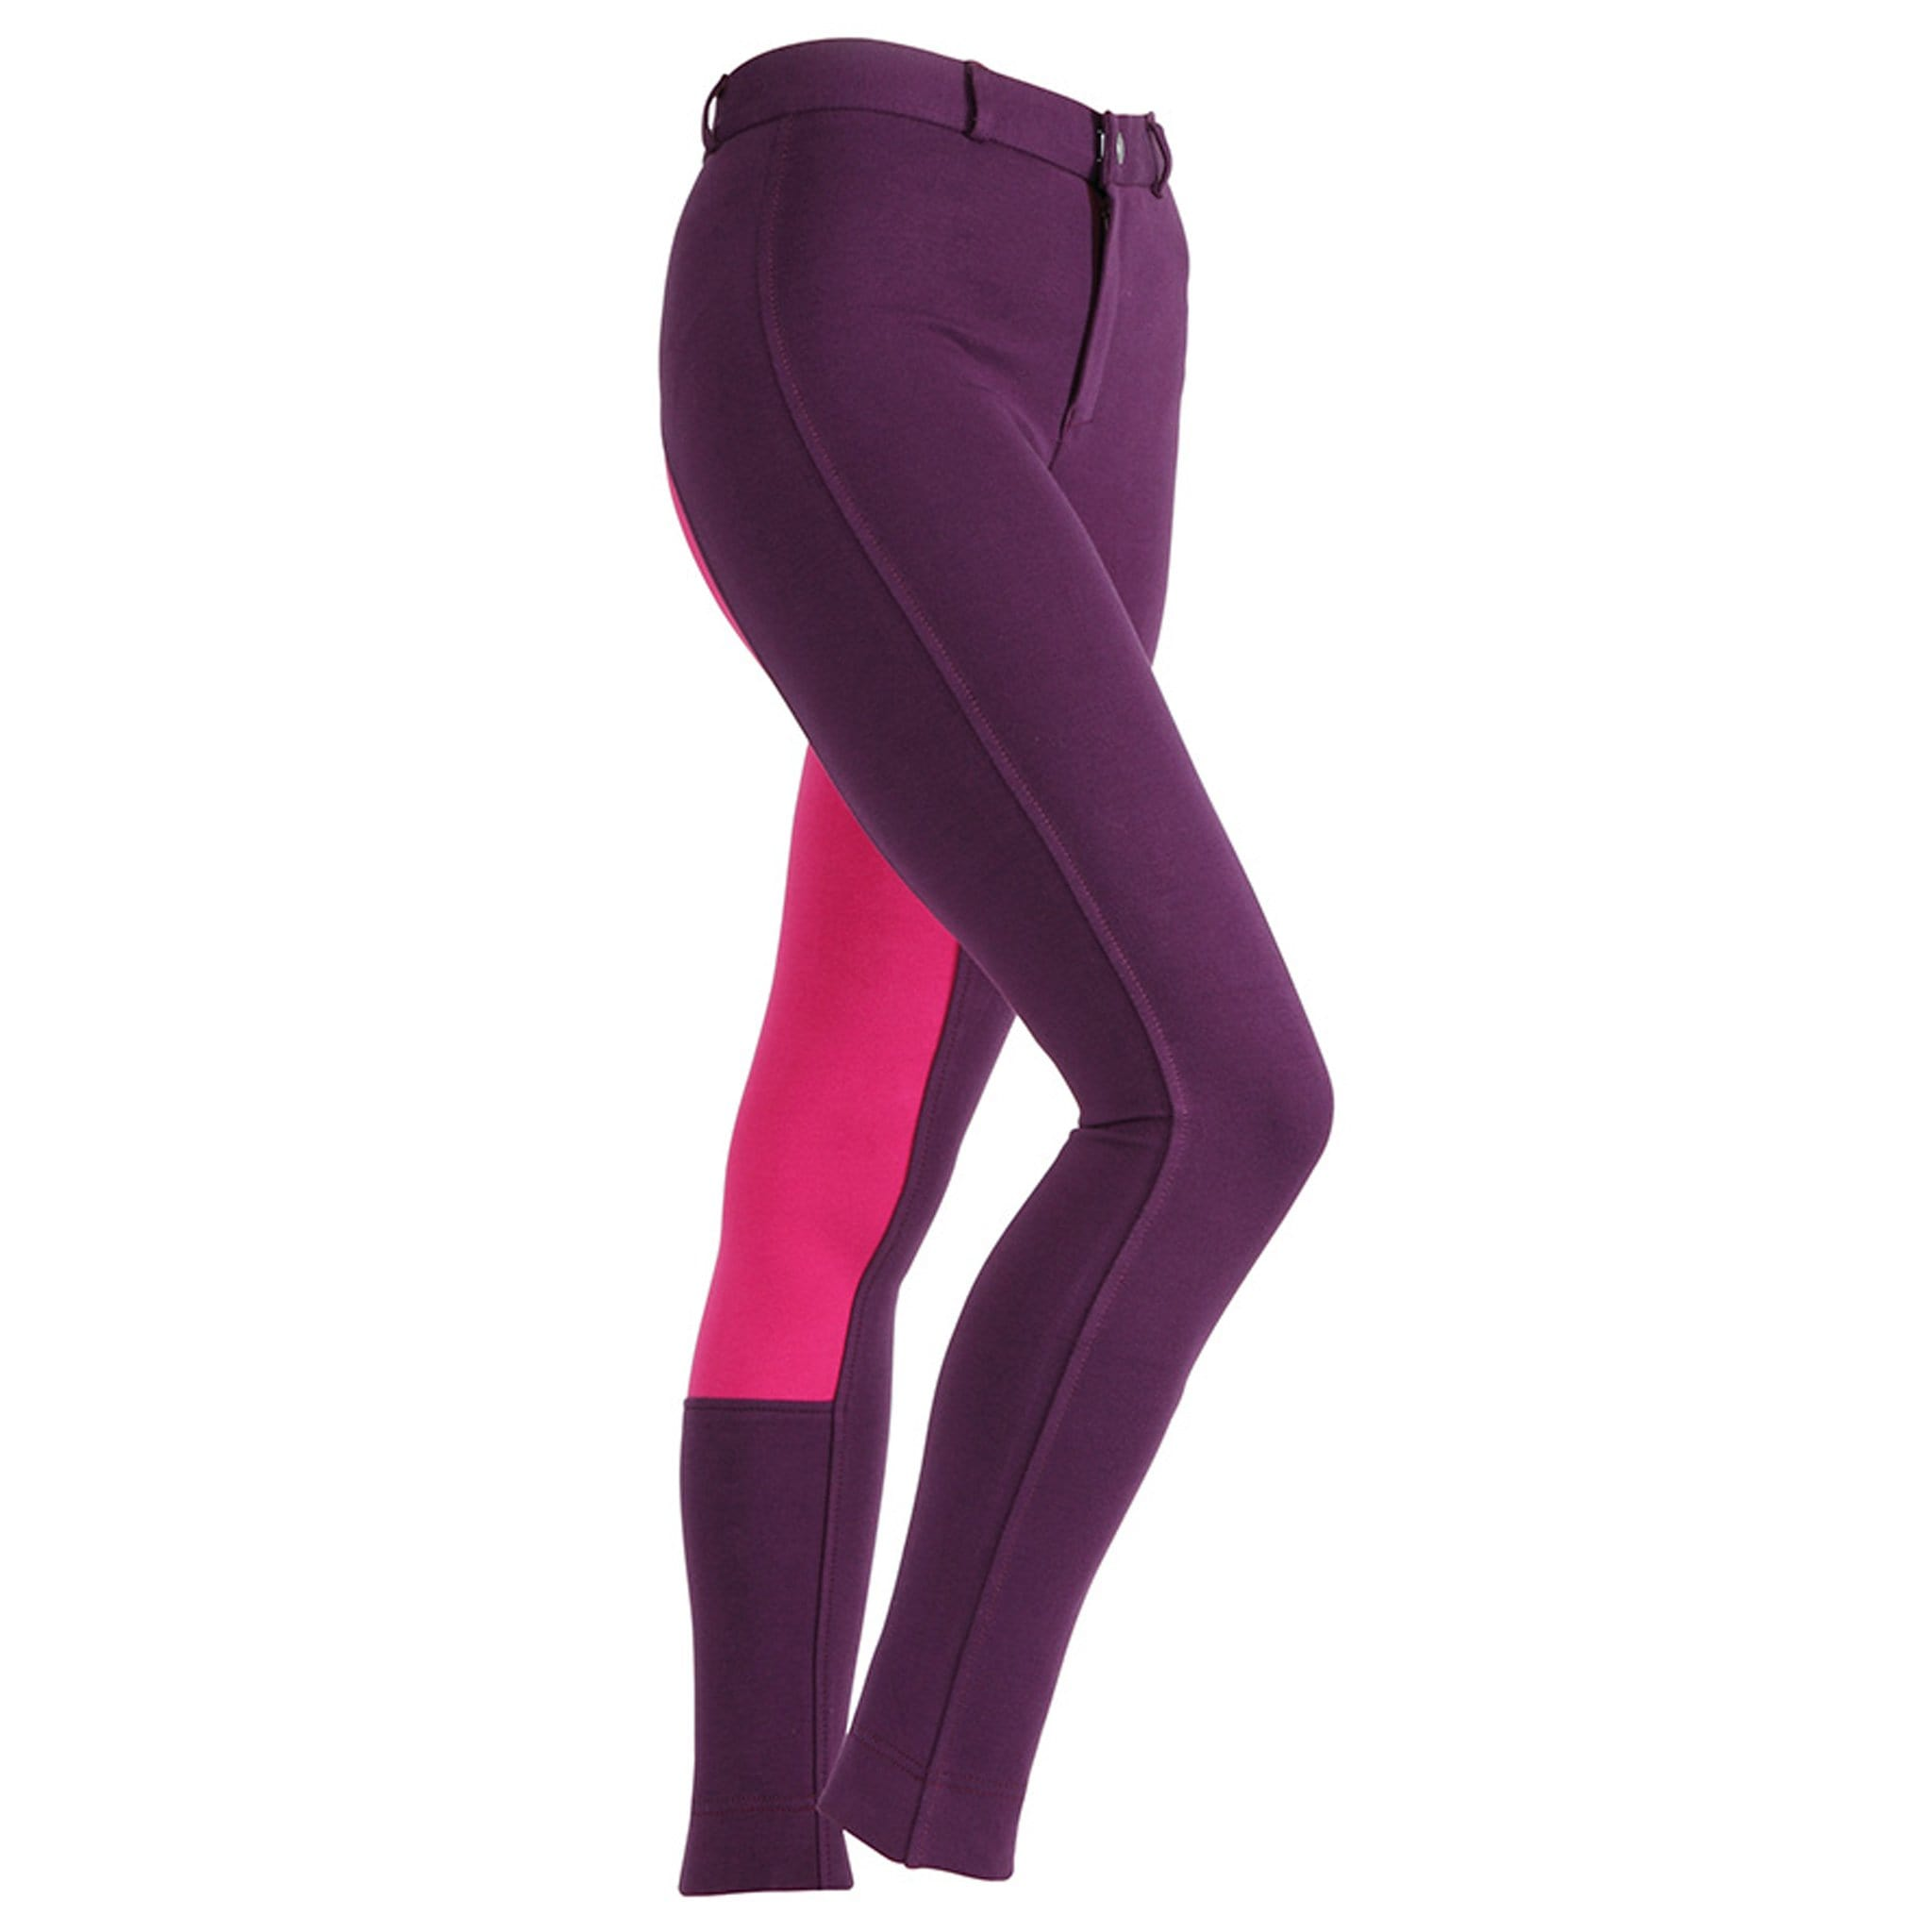 Shires Girls Wessex Two Tone Full Seat Jodhpurs Purple/Pink 8788.